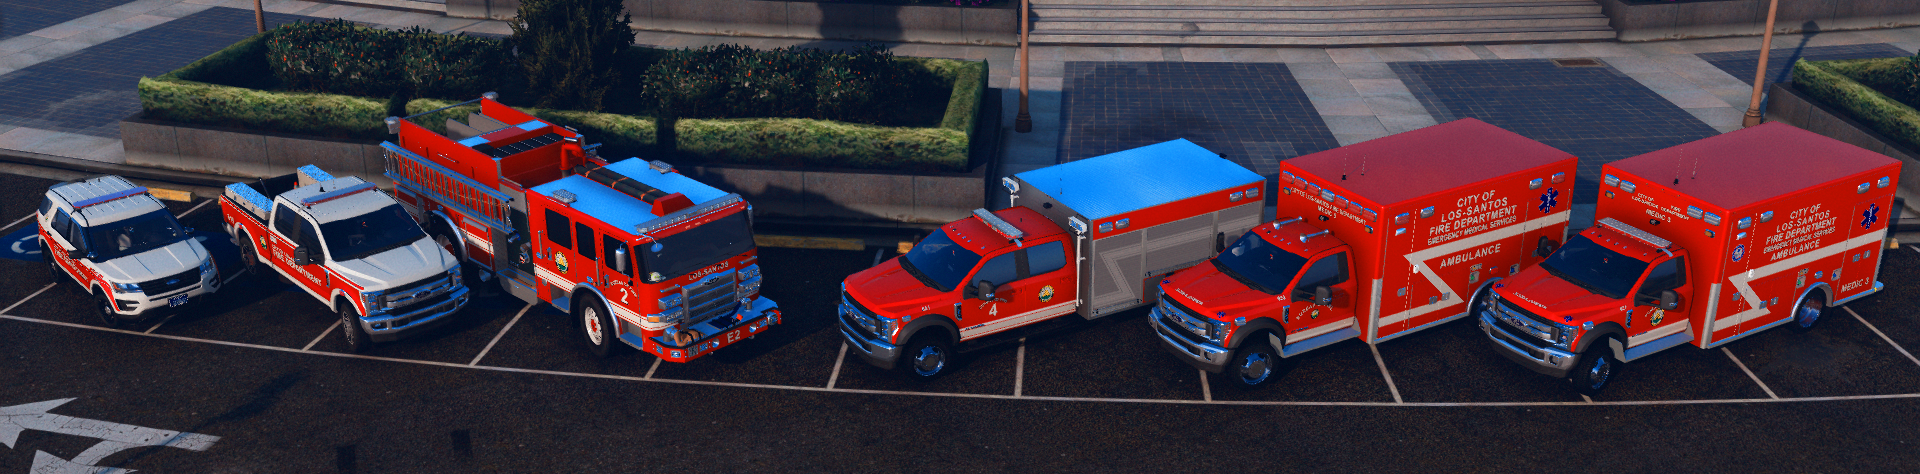 whole fleet, cause who needs to respond to calls anyways